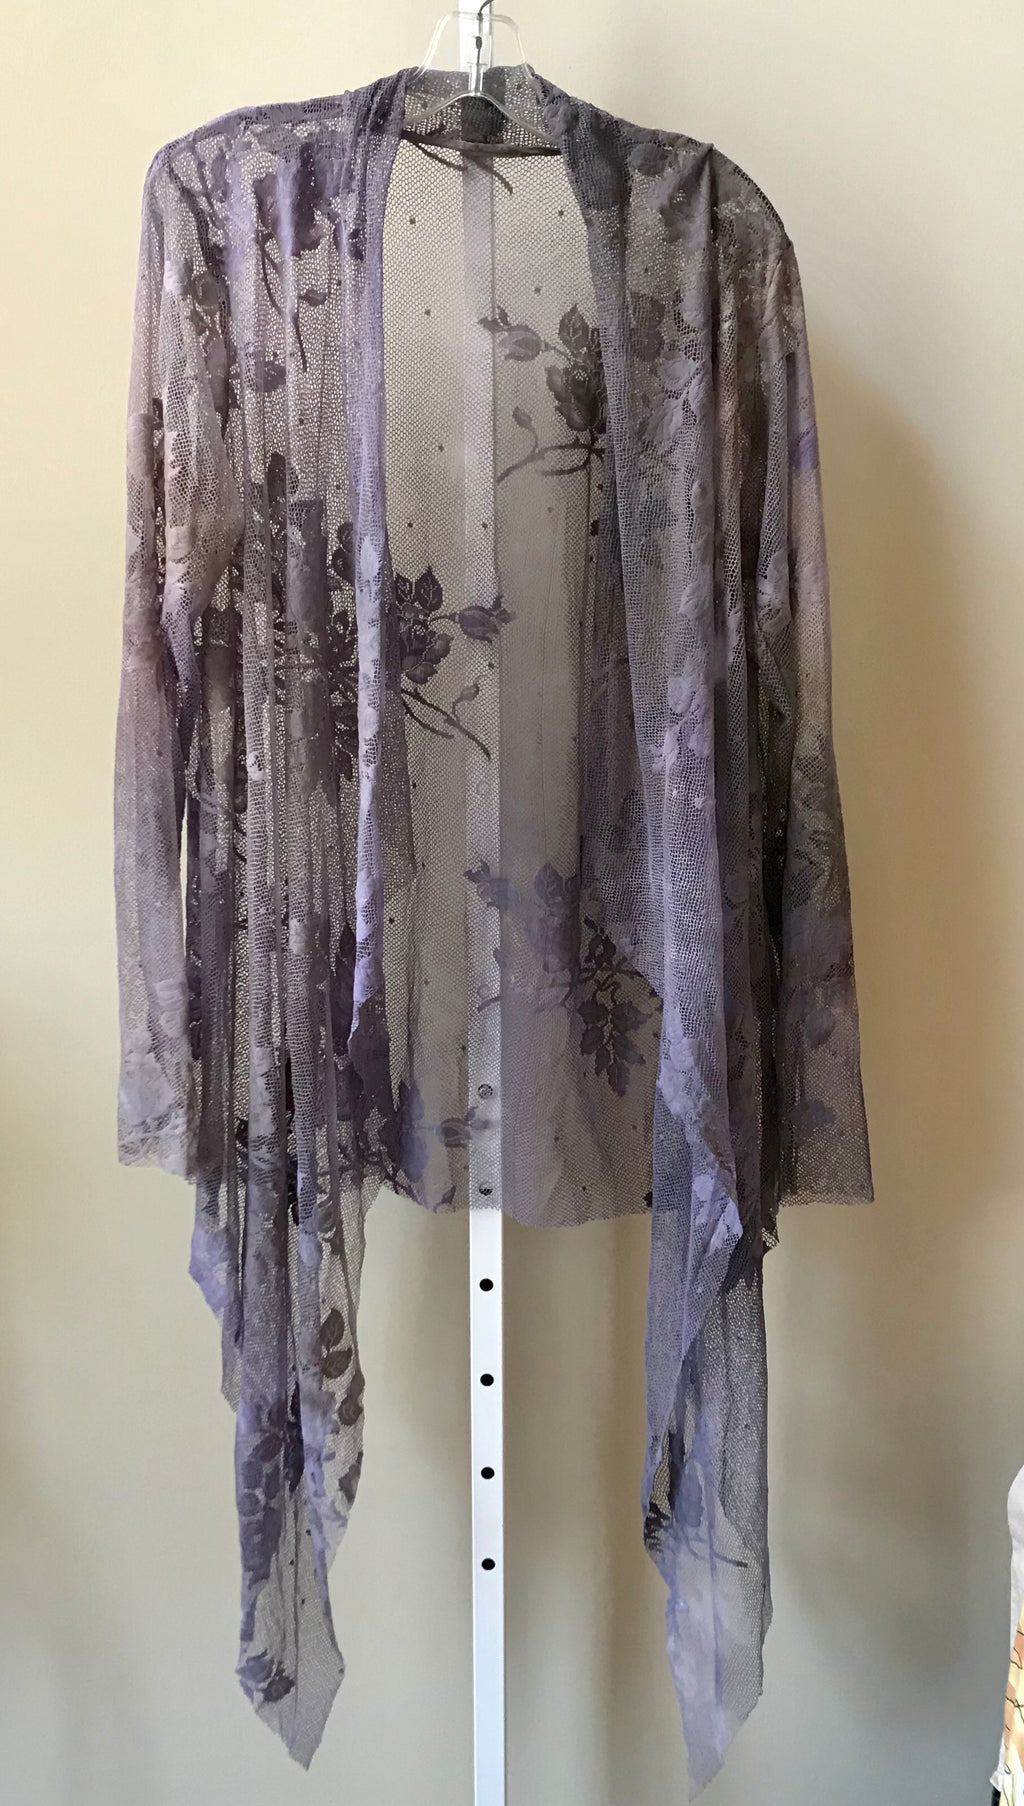 Robin Kaplan Garden Lace Duster in Lilac, Sz 3, on Sale